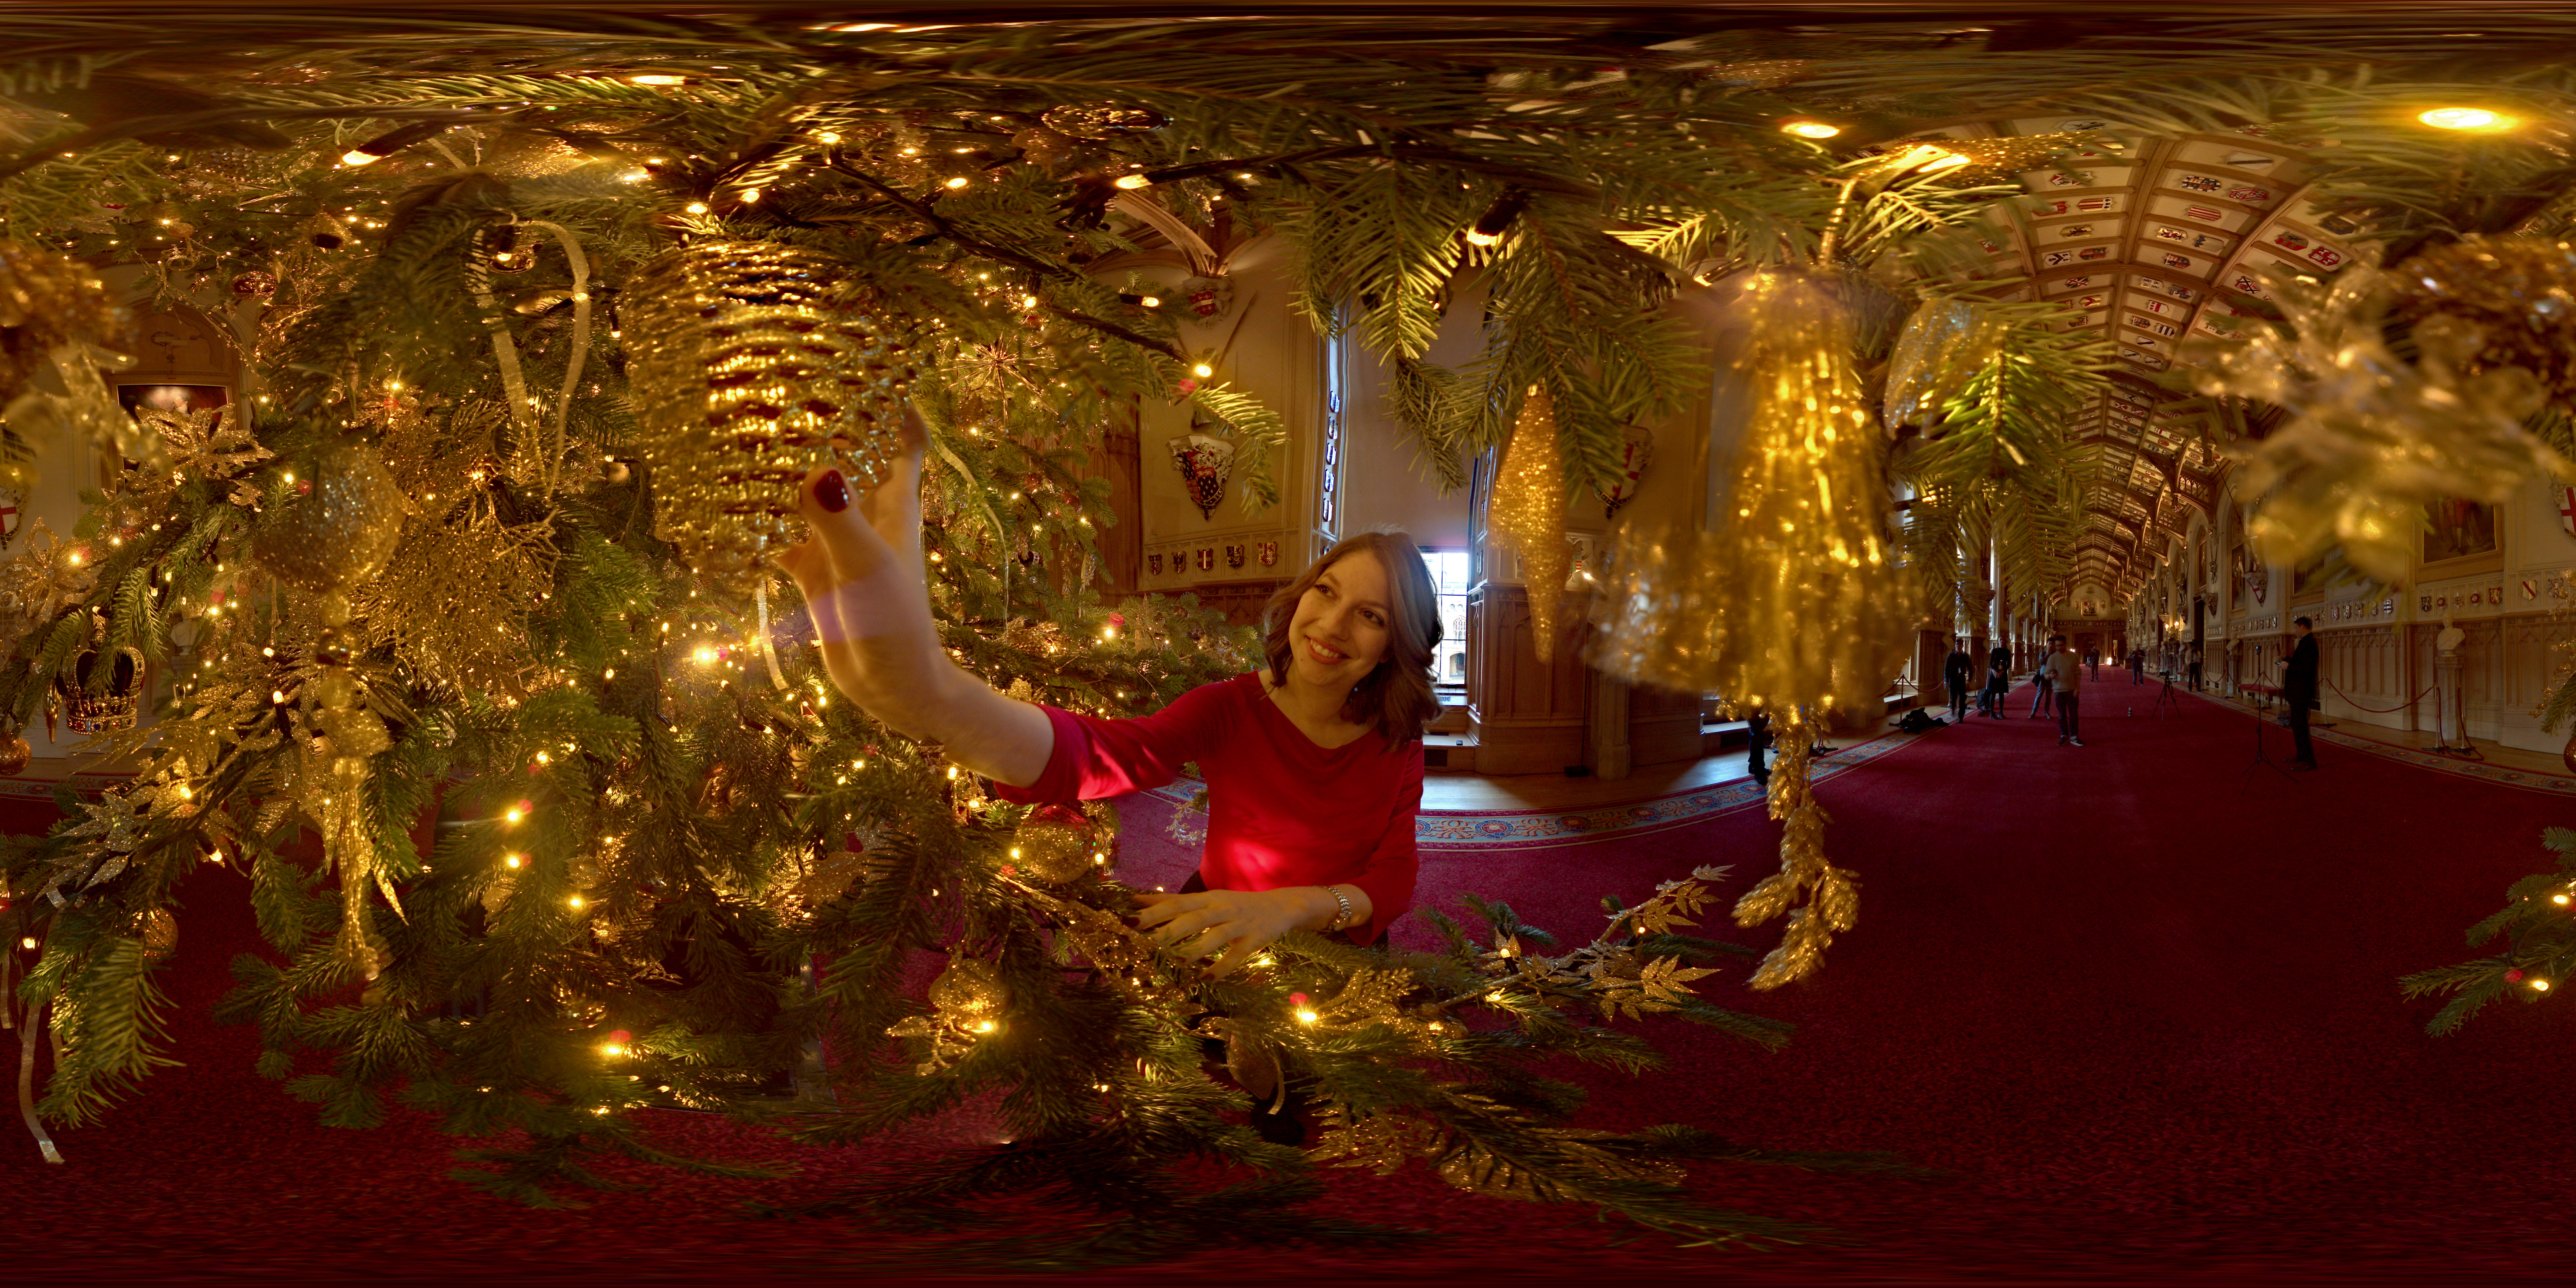 (360 image) A member of the Royal Collection hangs a decoration on a 20ft Nordmann Fir tree from Windsor Great Park in the St George's Hall on November 23, 2017 in Windsor, England.